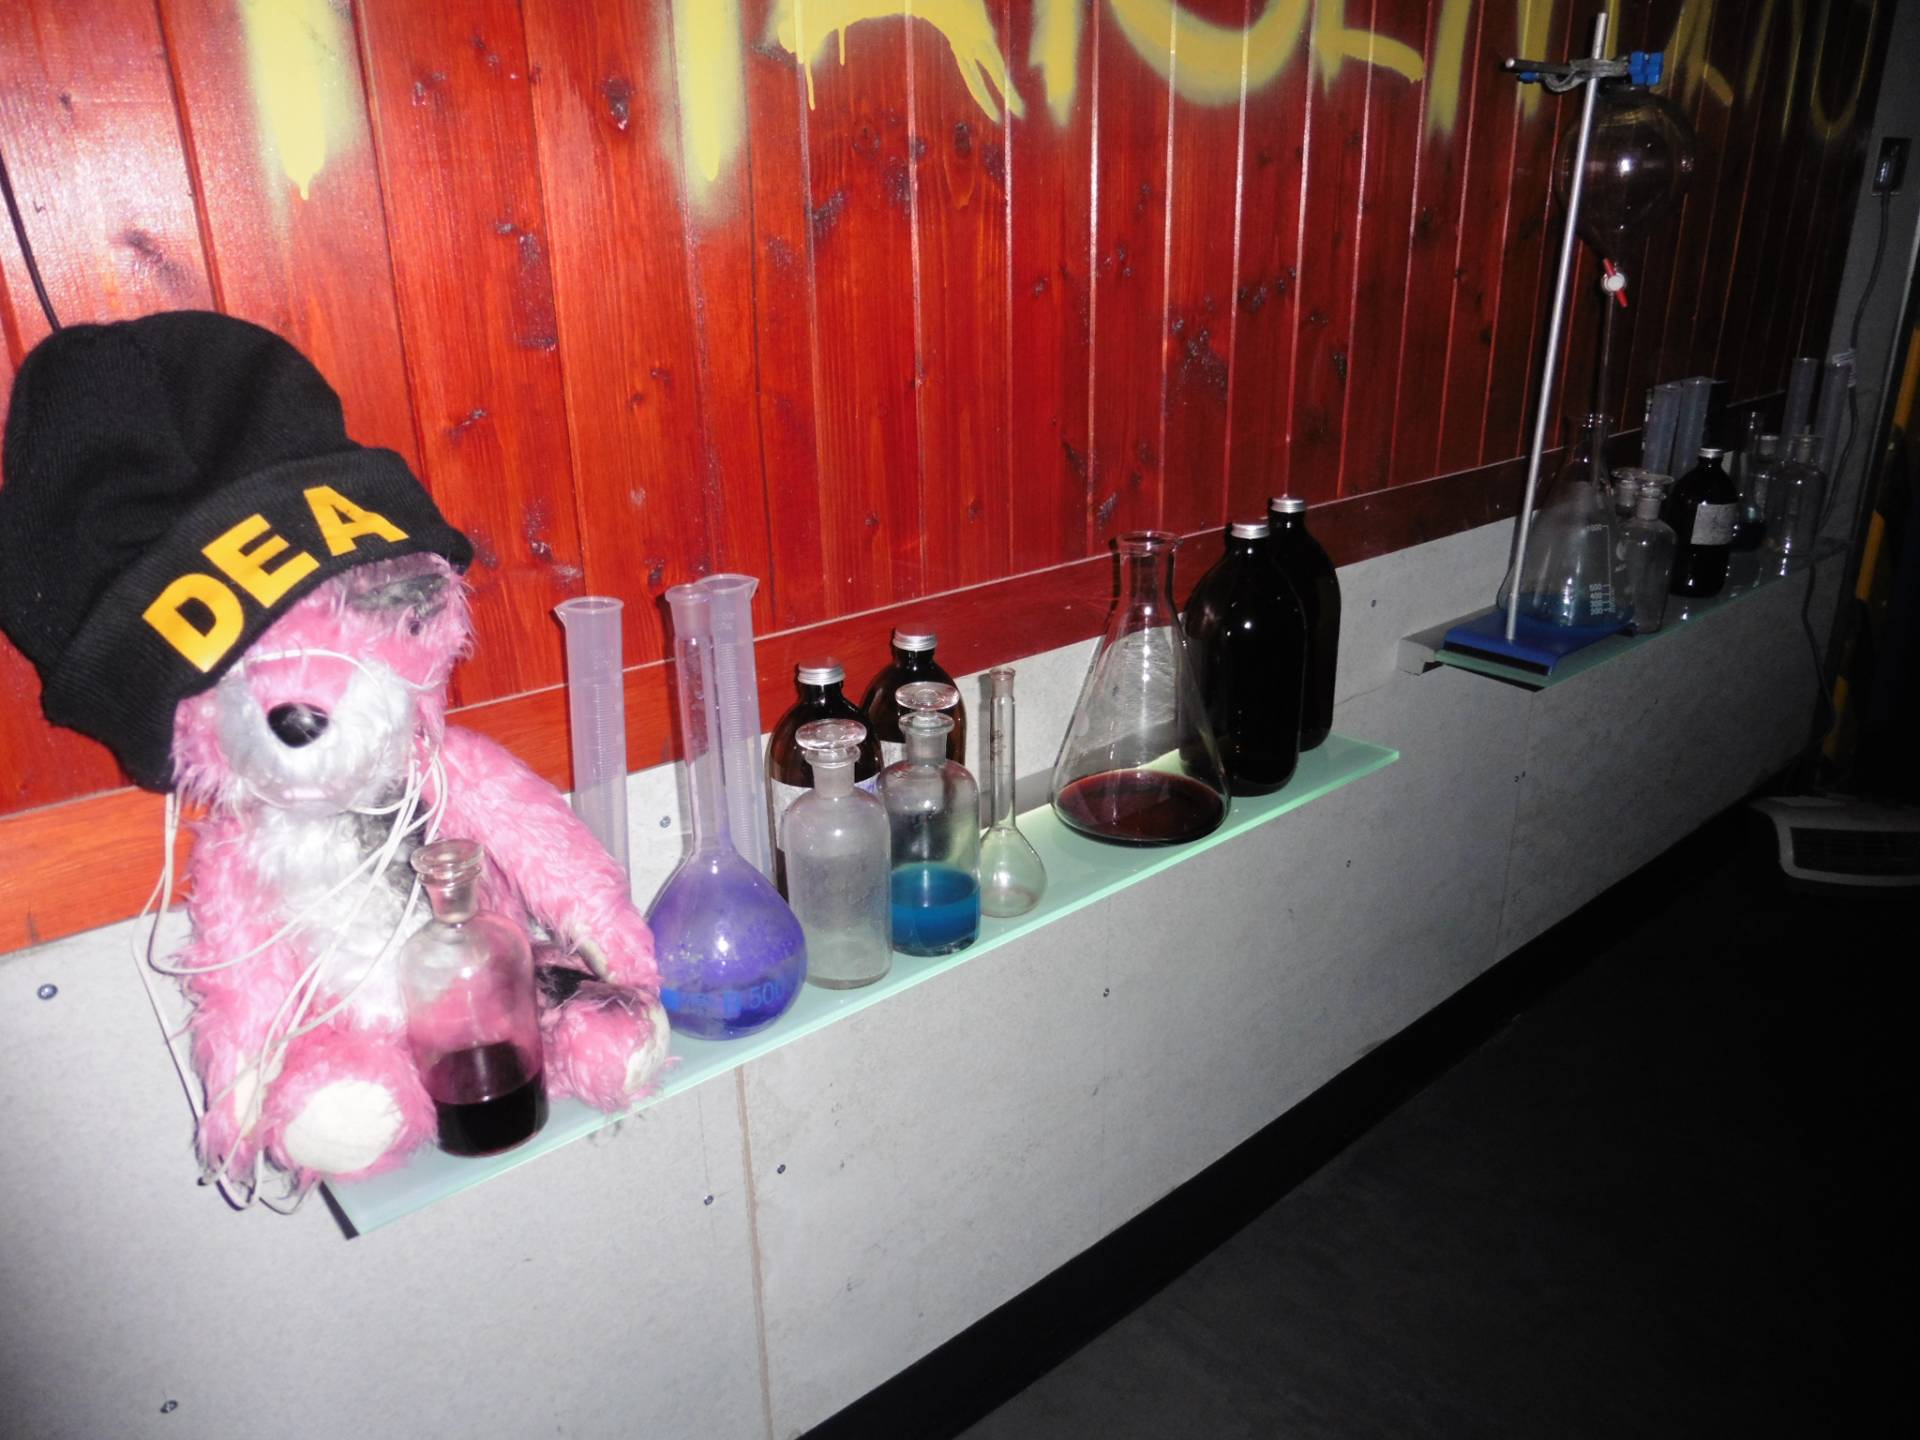 Take 3: Pink Teddy & cooking equipment @ Breaking Bad Bar - ABQ London